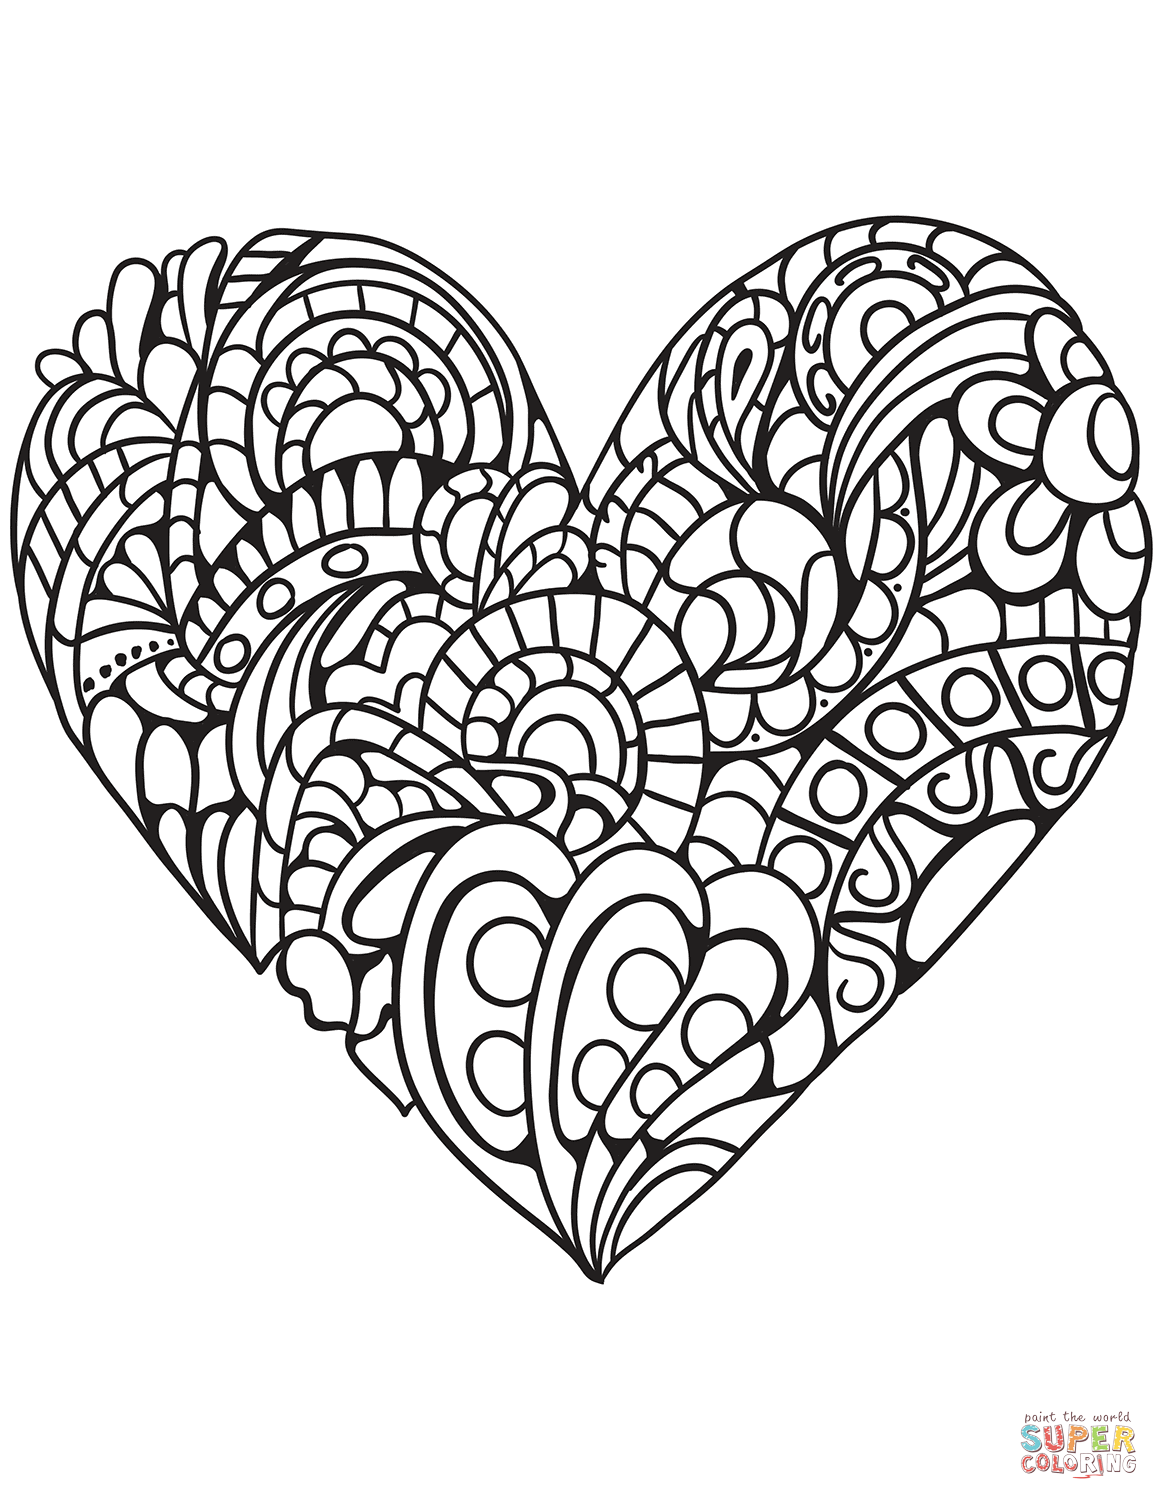 Zentangle Heart coloring page | Free Printable Coloring Pages